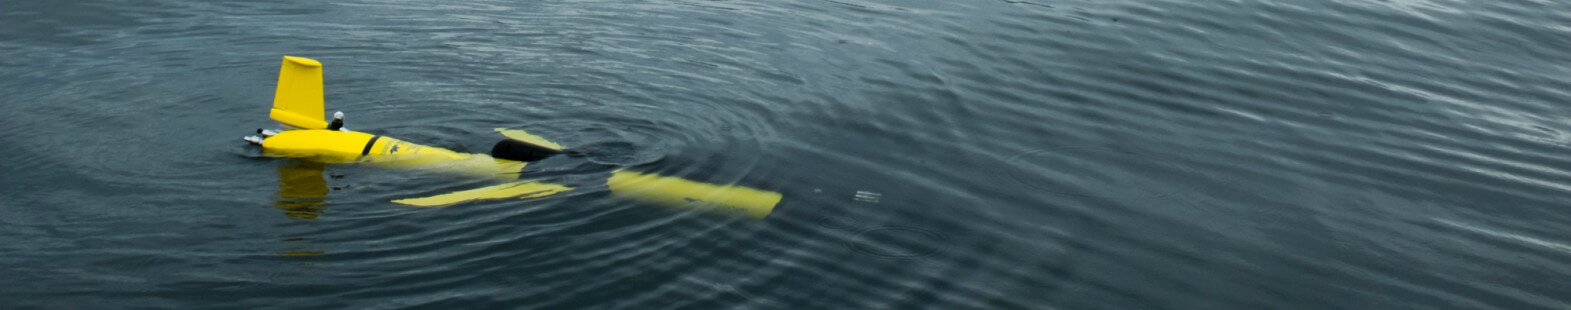 Photograph of the UBC Glider in the water, used for the study of baleen whale habitats of Roseway Basin, NS. Glider is a long yellow tube, with wings and a tail fin. It is shown floating just beneath the surface of the water.